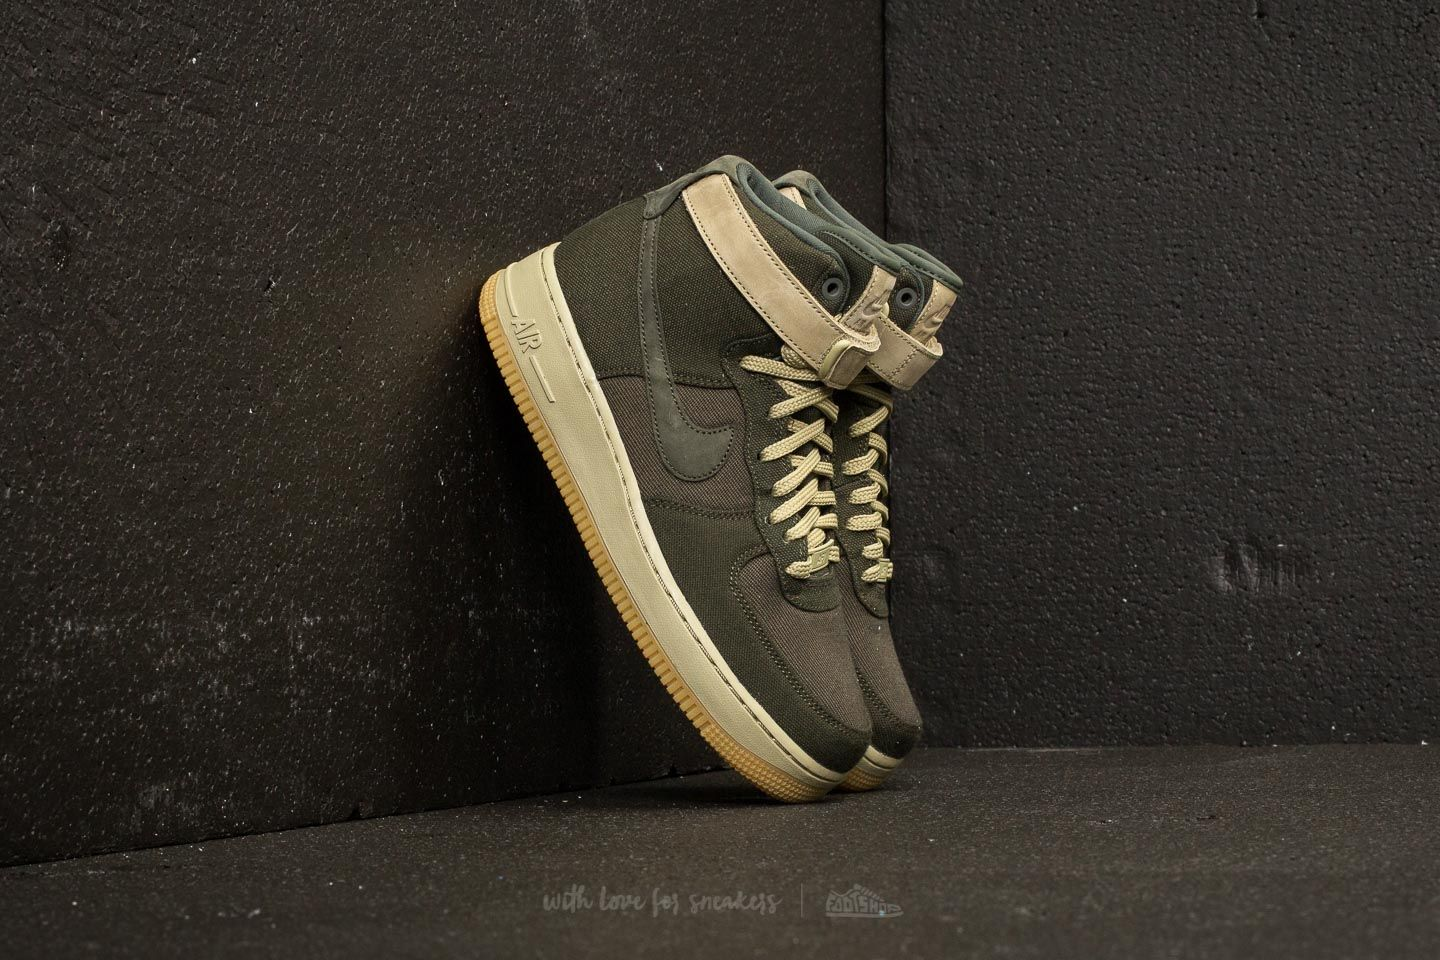 645f26168e3887 Nike Wmns Air Force 1 Hi Utility Sequoia  Sequoia-Neutral Olive ...